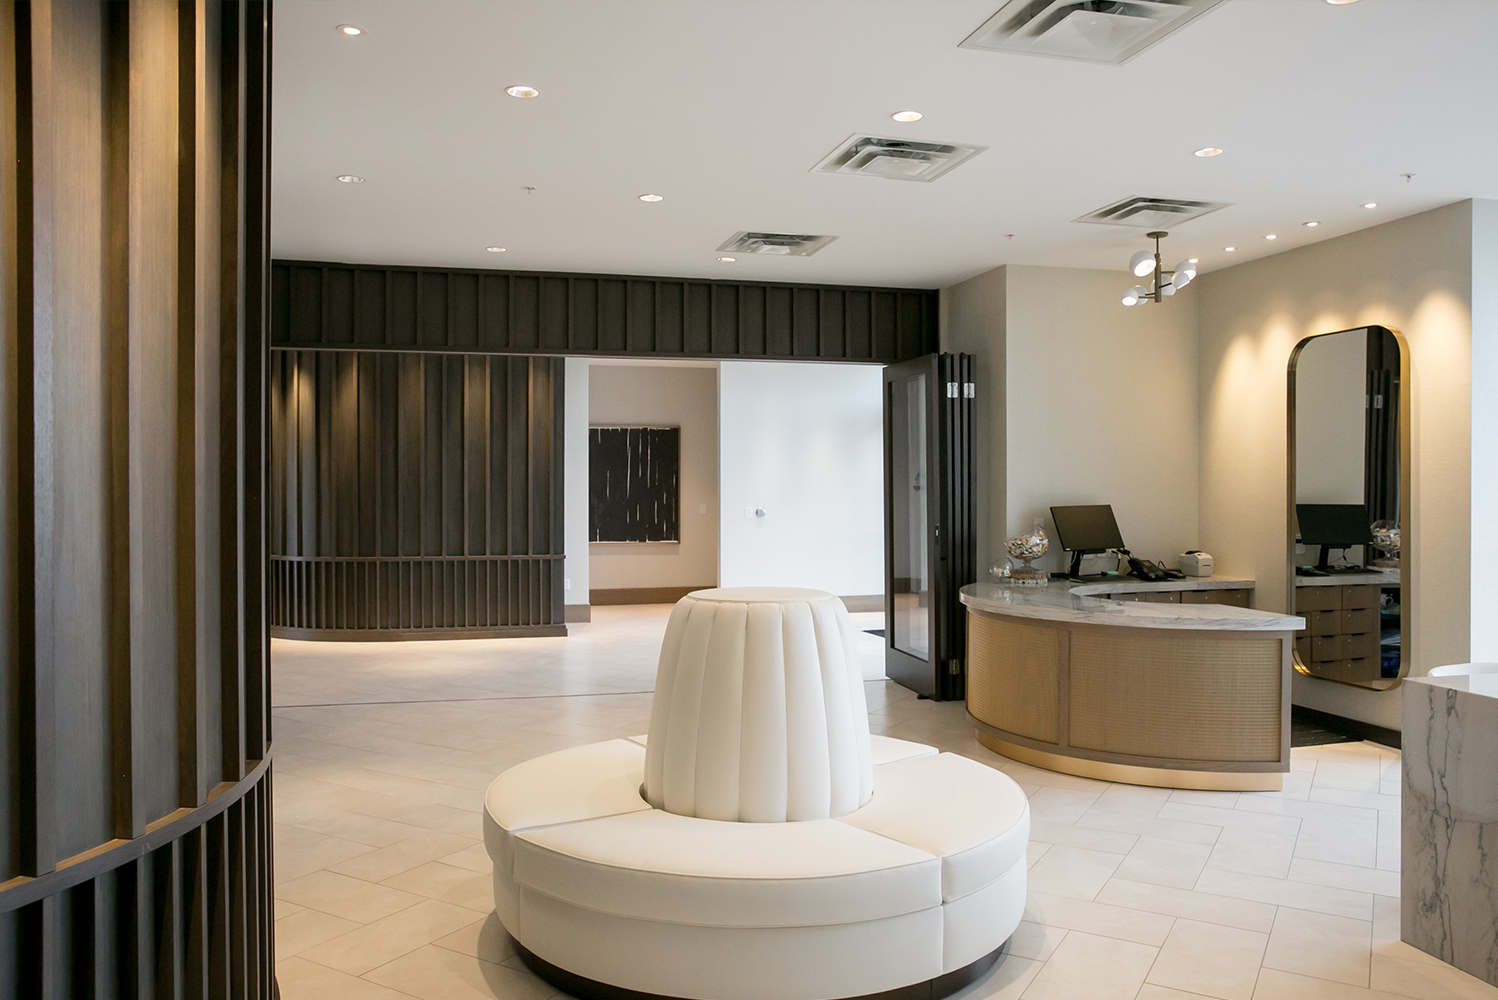 JW Marriott Nashville, a 33-story glass tower in the Music City, launched the Spa by JW.